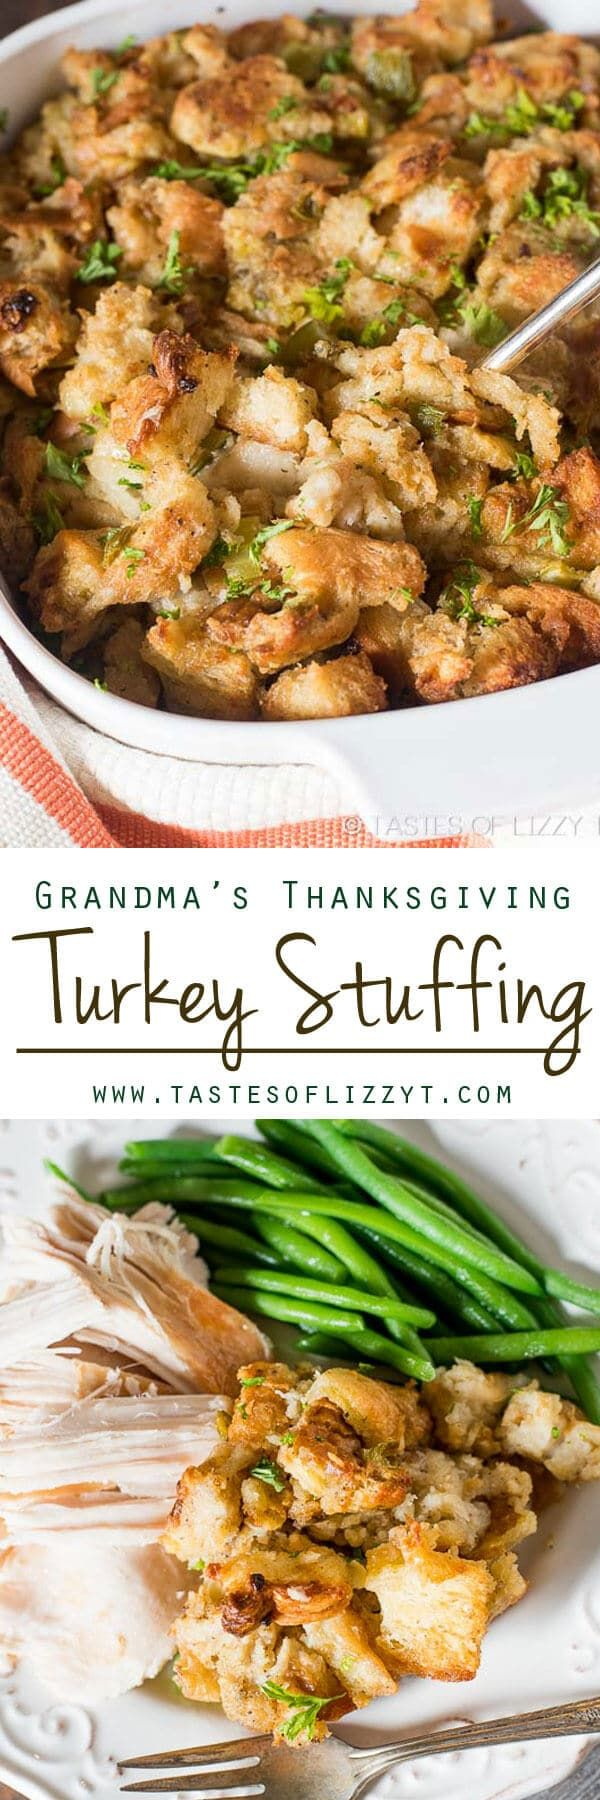 Grandma's Thanksgiving Turkey Stuffing. This is a long-time family recipe for simple and savory turkey stuffing. Bake it in the oven or in the turkey!